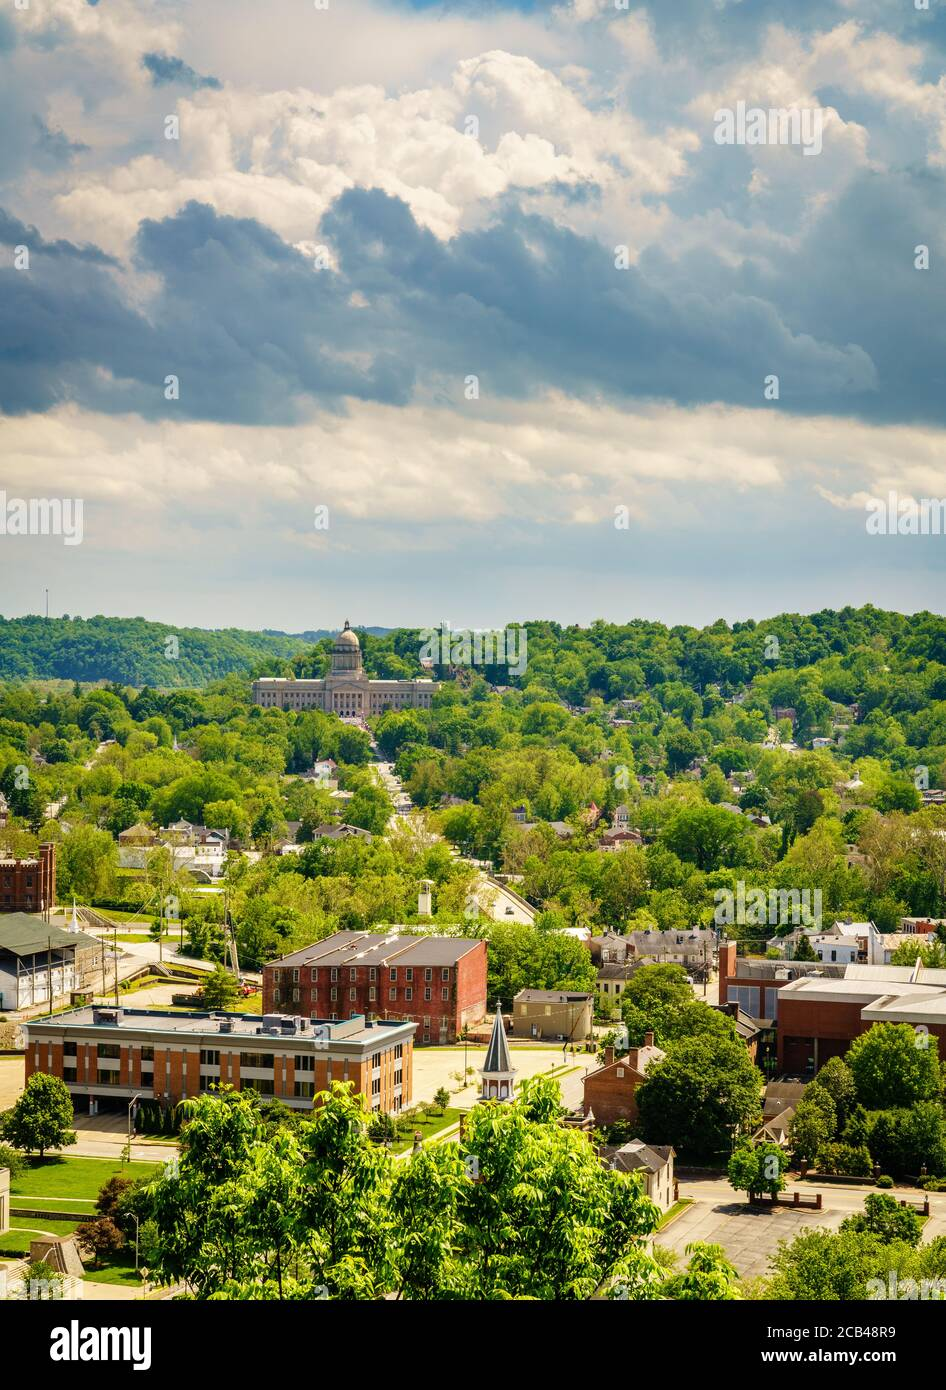 Aerial view of downtown Frankfort, KY with the State Capitol building Stock Photo